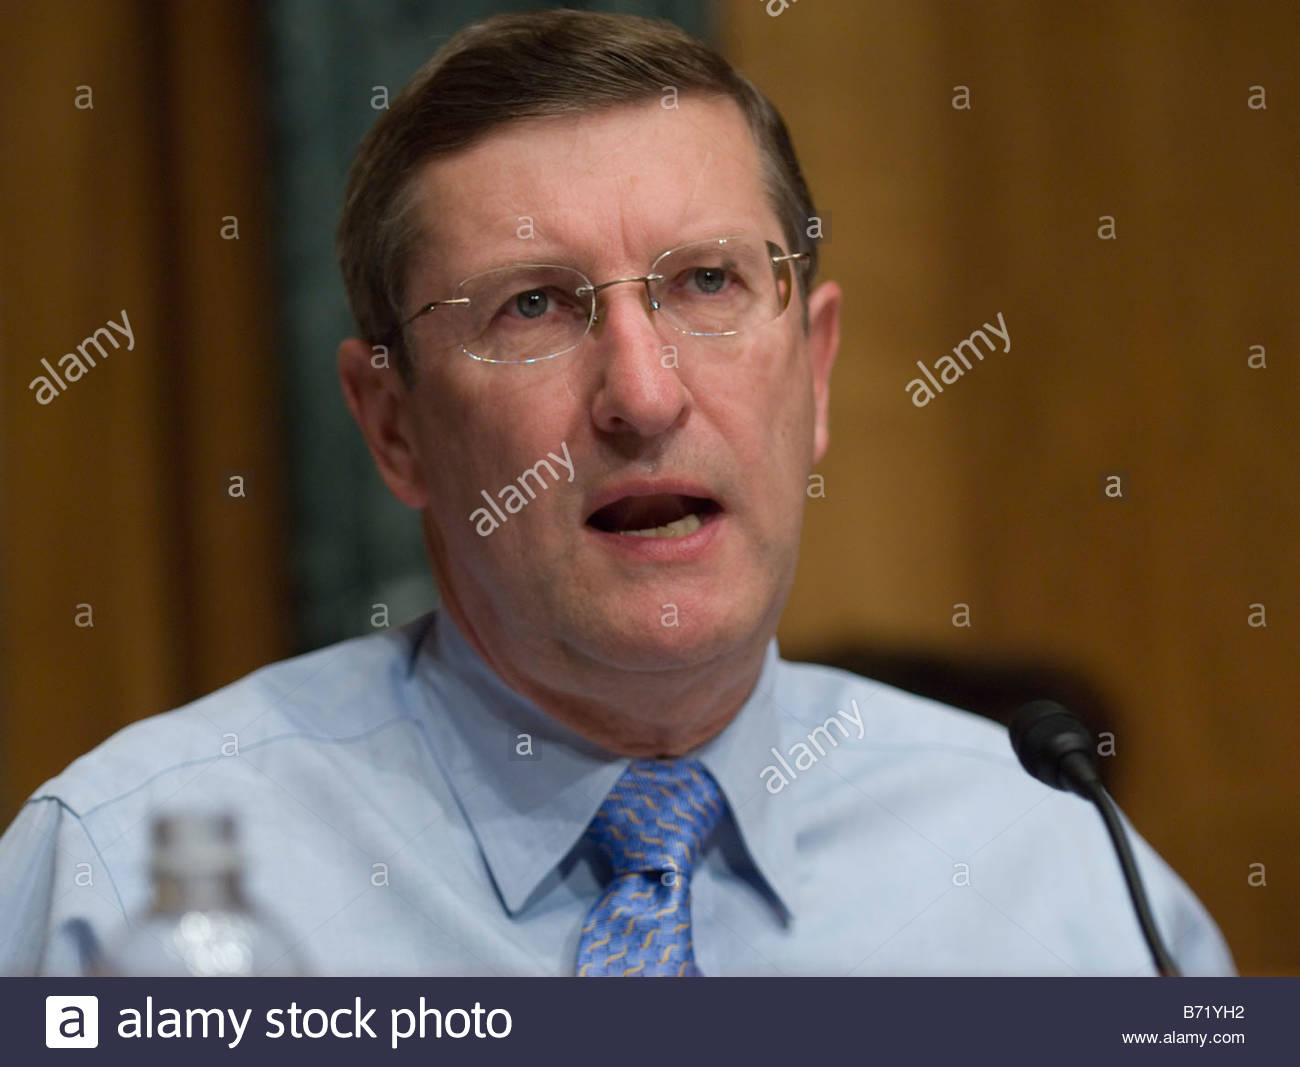 06 21 07 Senate Budget Chairman Kent Conrad D N D during the hearing on the budget and overhauling health care with - Stock Image